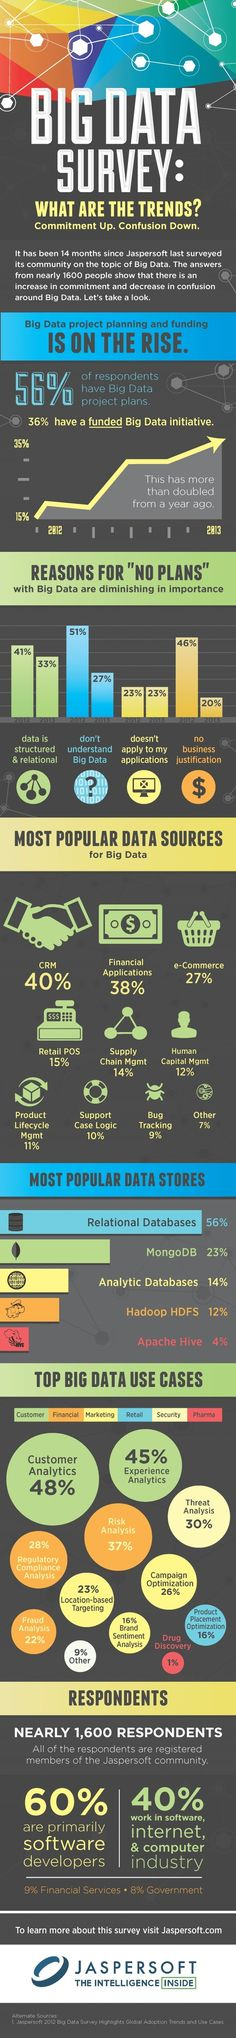 Big Data Survey: What Are the Trends? [Infographic] - Business 2 Community